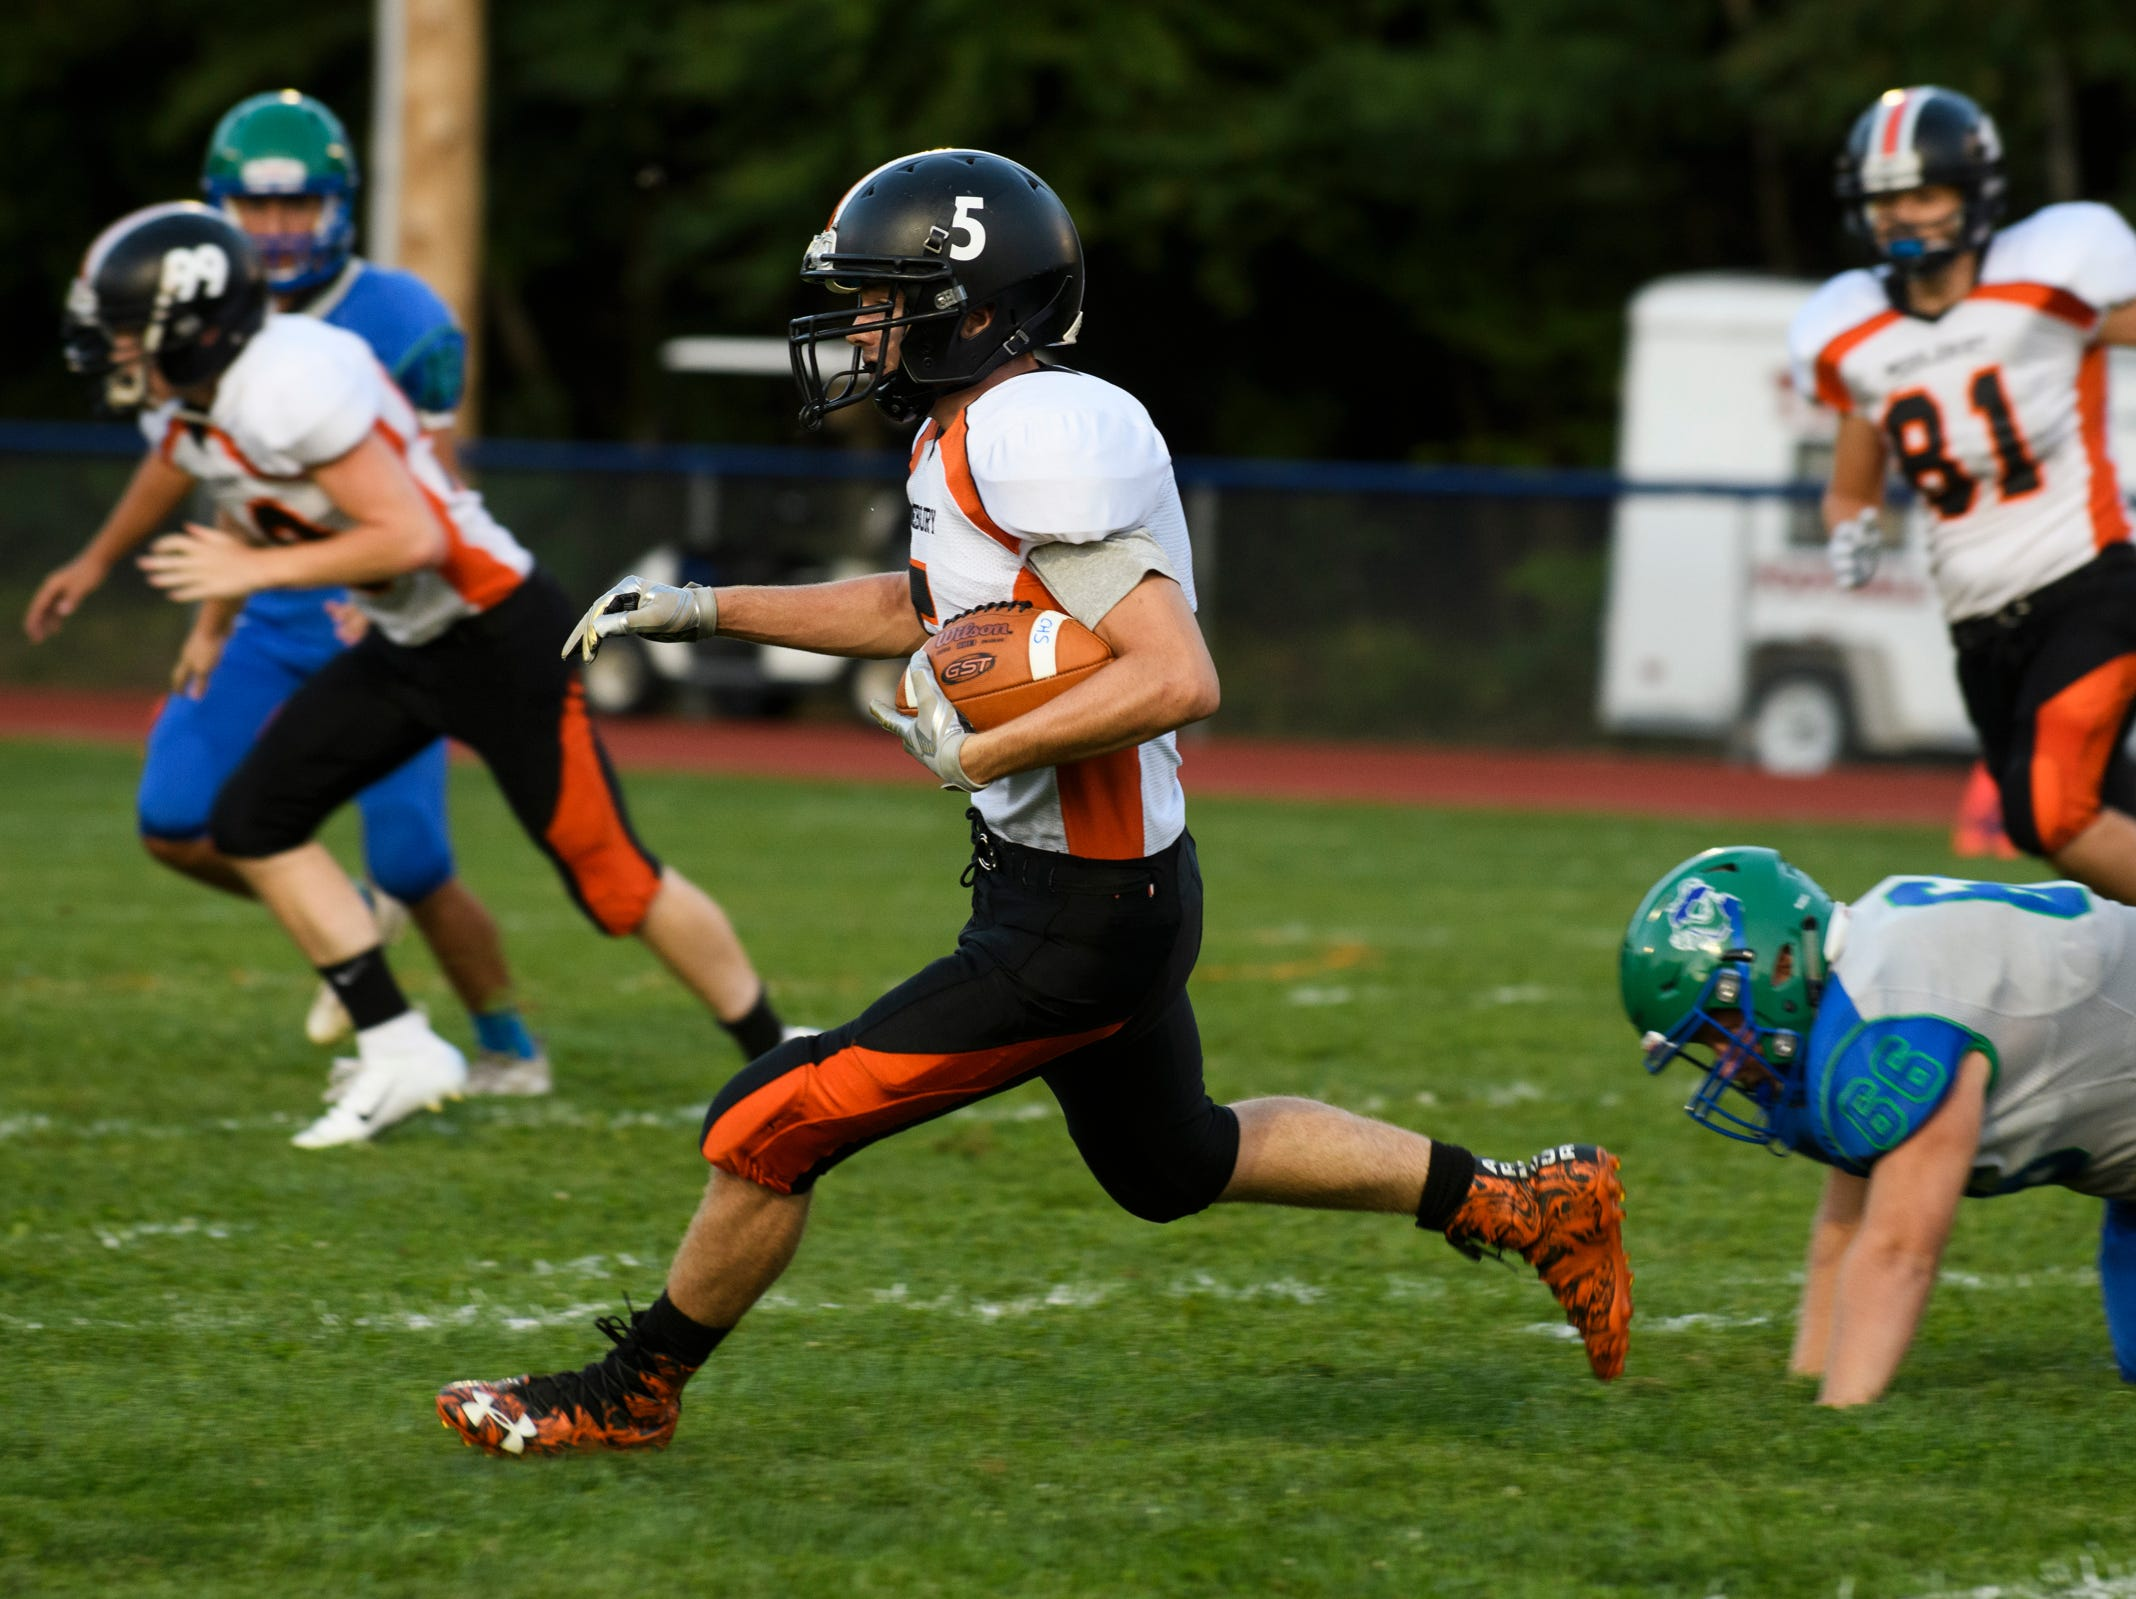 Middlebury's Ian Ploof (5) returns the kick off for a touchdown during the boys high school football game between Middlebury and Colchester at Colchester high school on Friday night August 31, 2018 in Colchester.